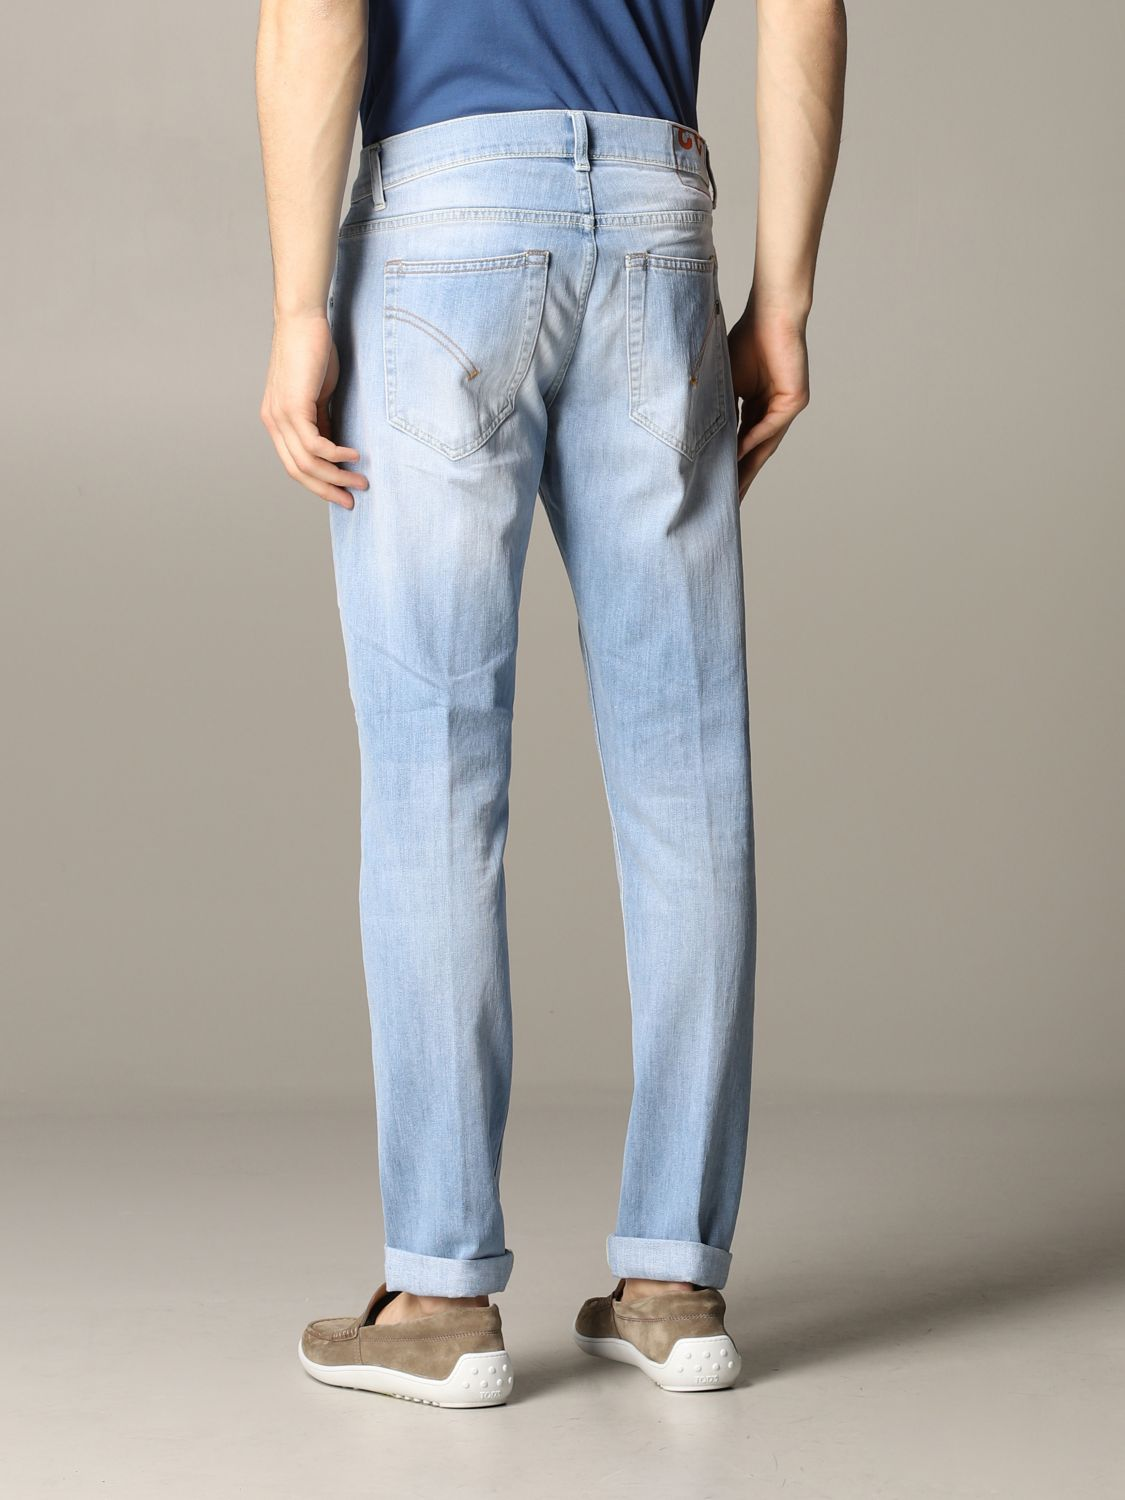 Jeans Dondup: Ritchie Dondup Slim Fit Jeans stone washed 3